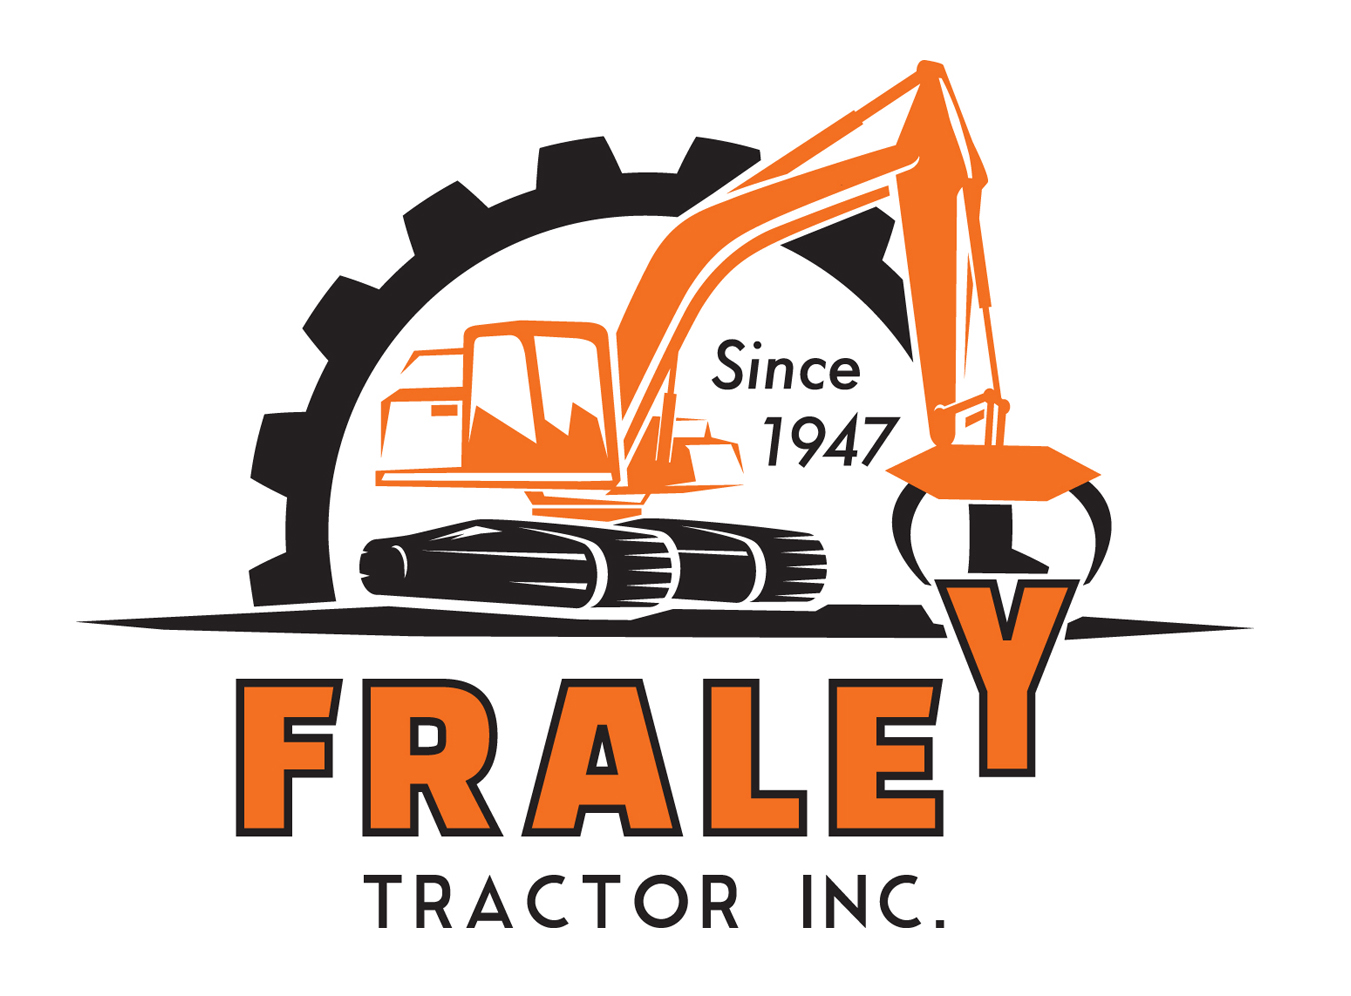 Fraley Tractor